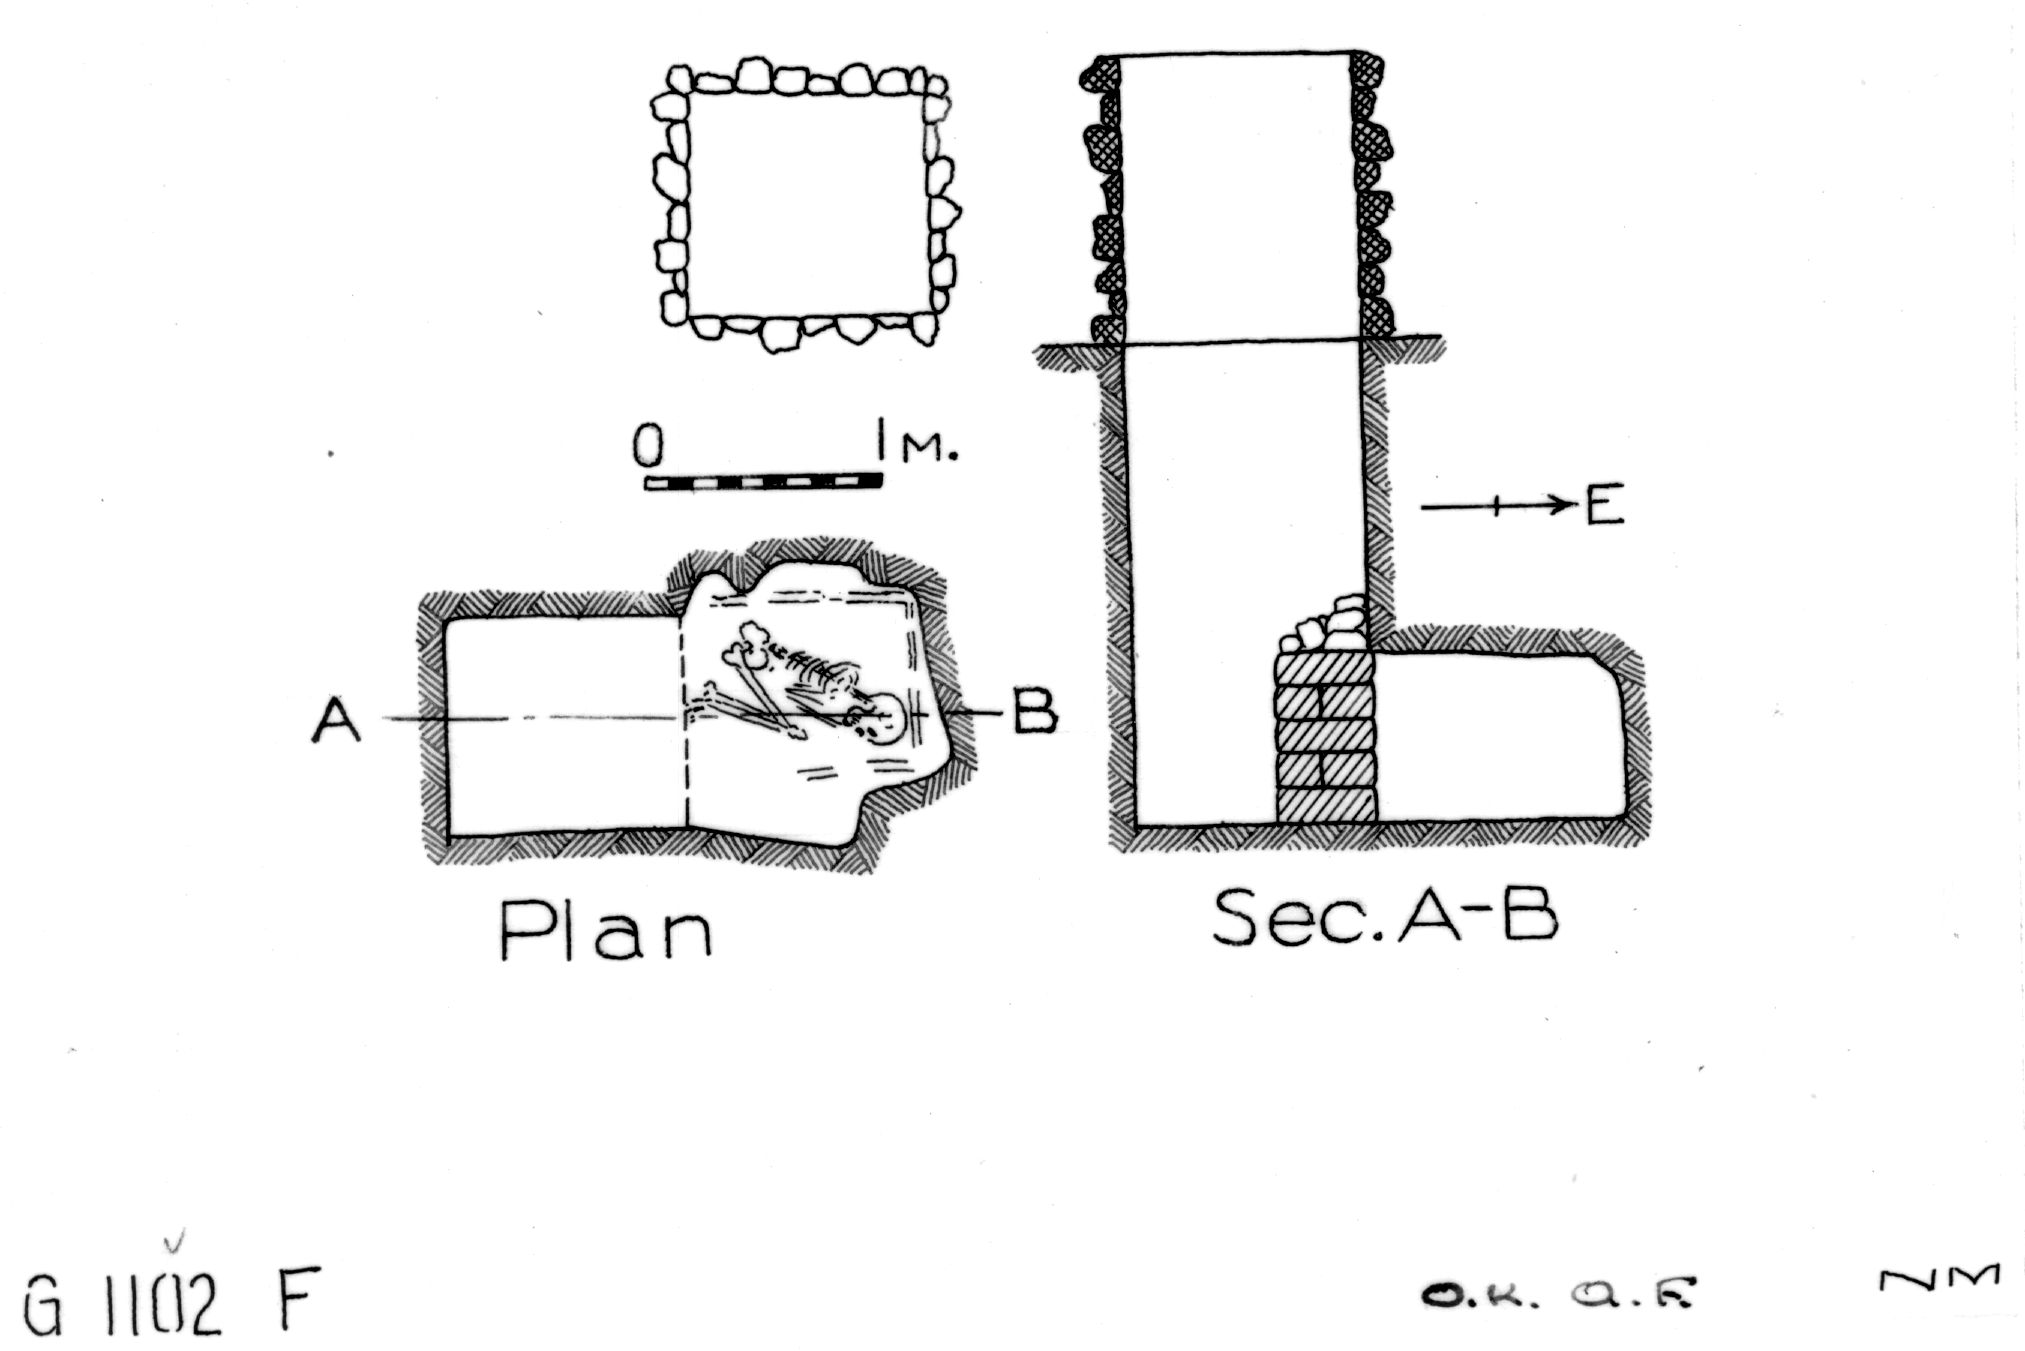 Maps and plans: G 1102, Shaft F